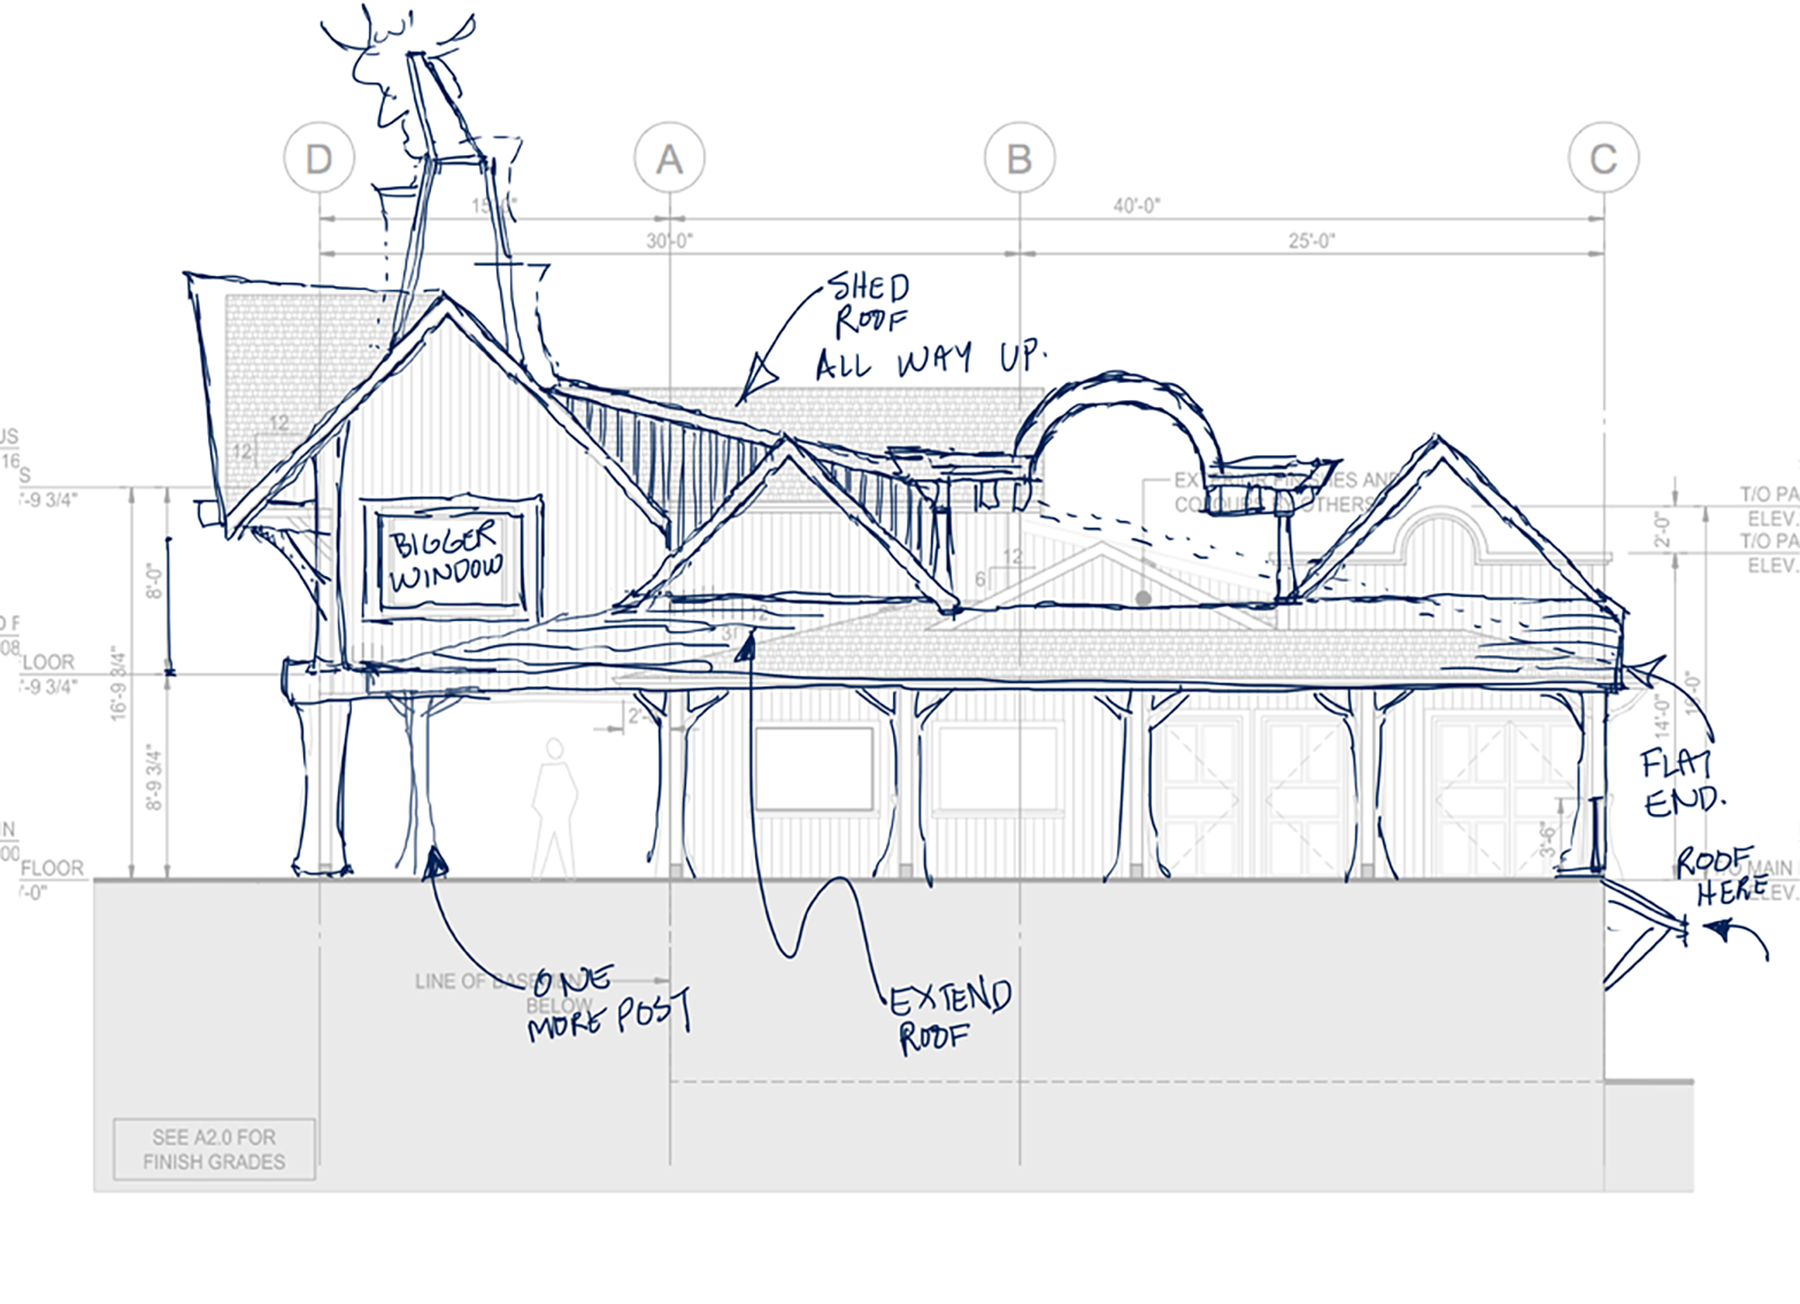 Cultus Lake Adventure Park Building Plans